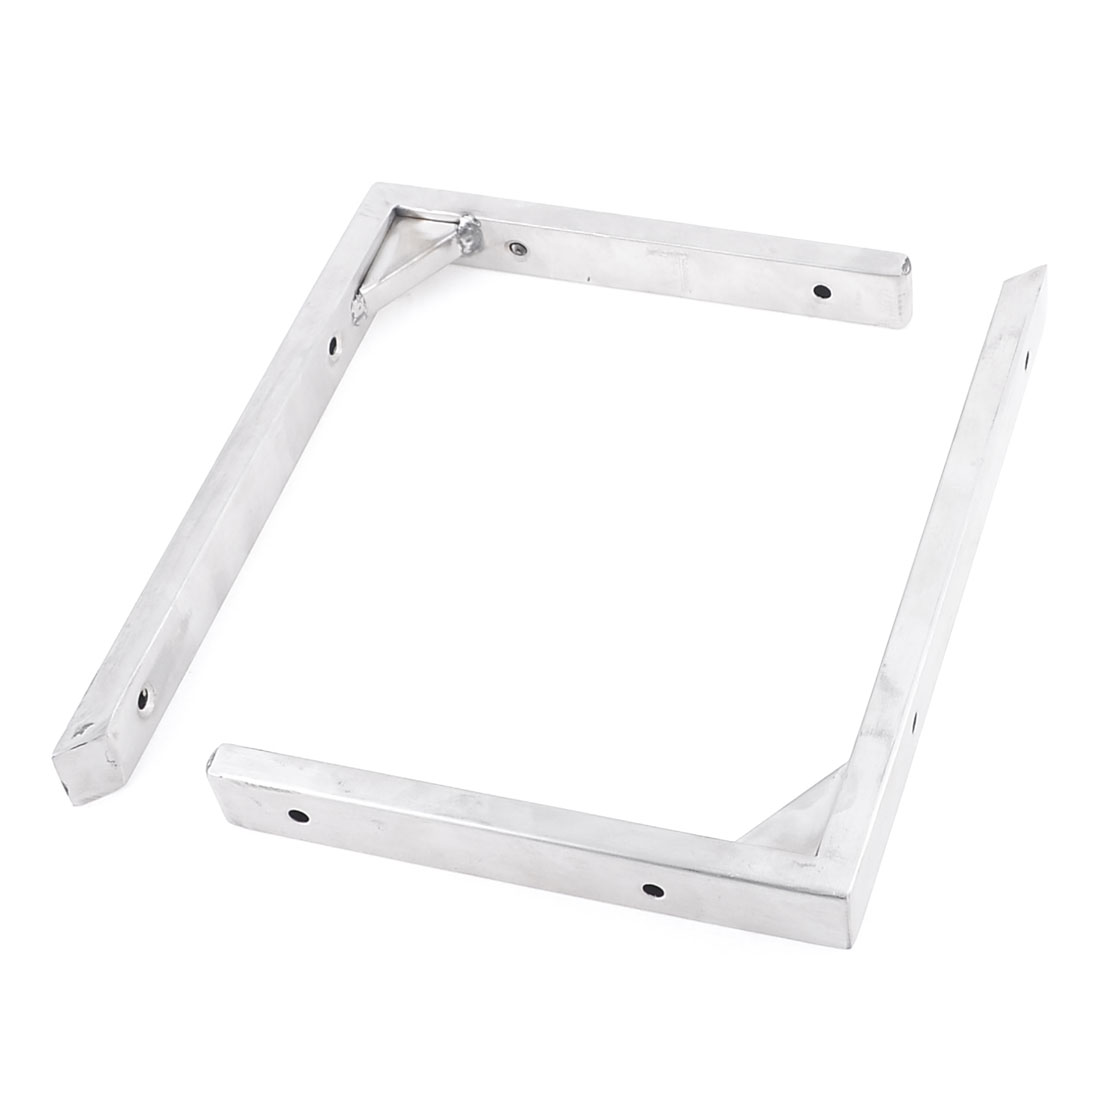 2 Pcs Stainless Steel Right Angle Shelf Support Brackets 20cm x 15cm